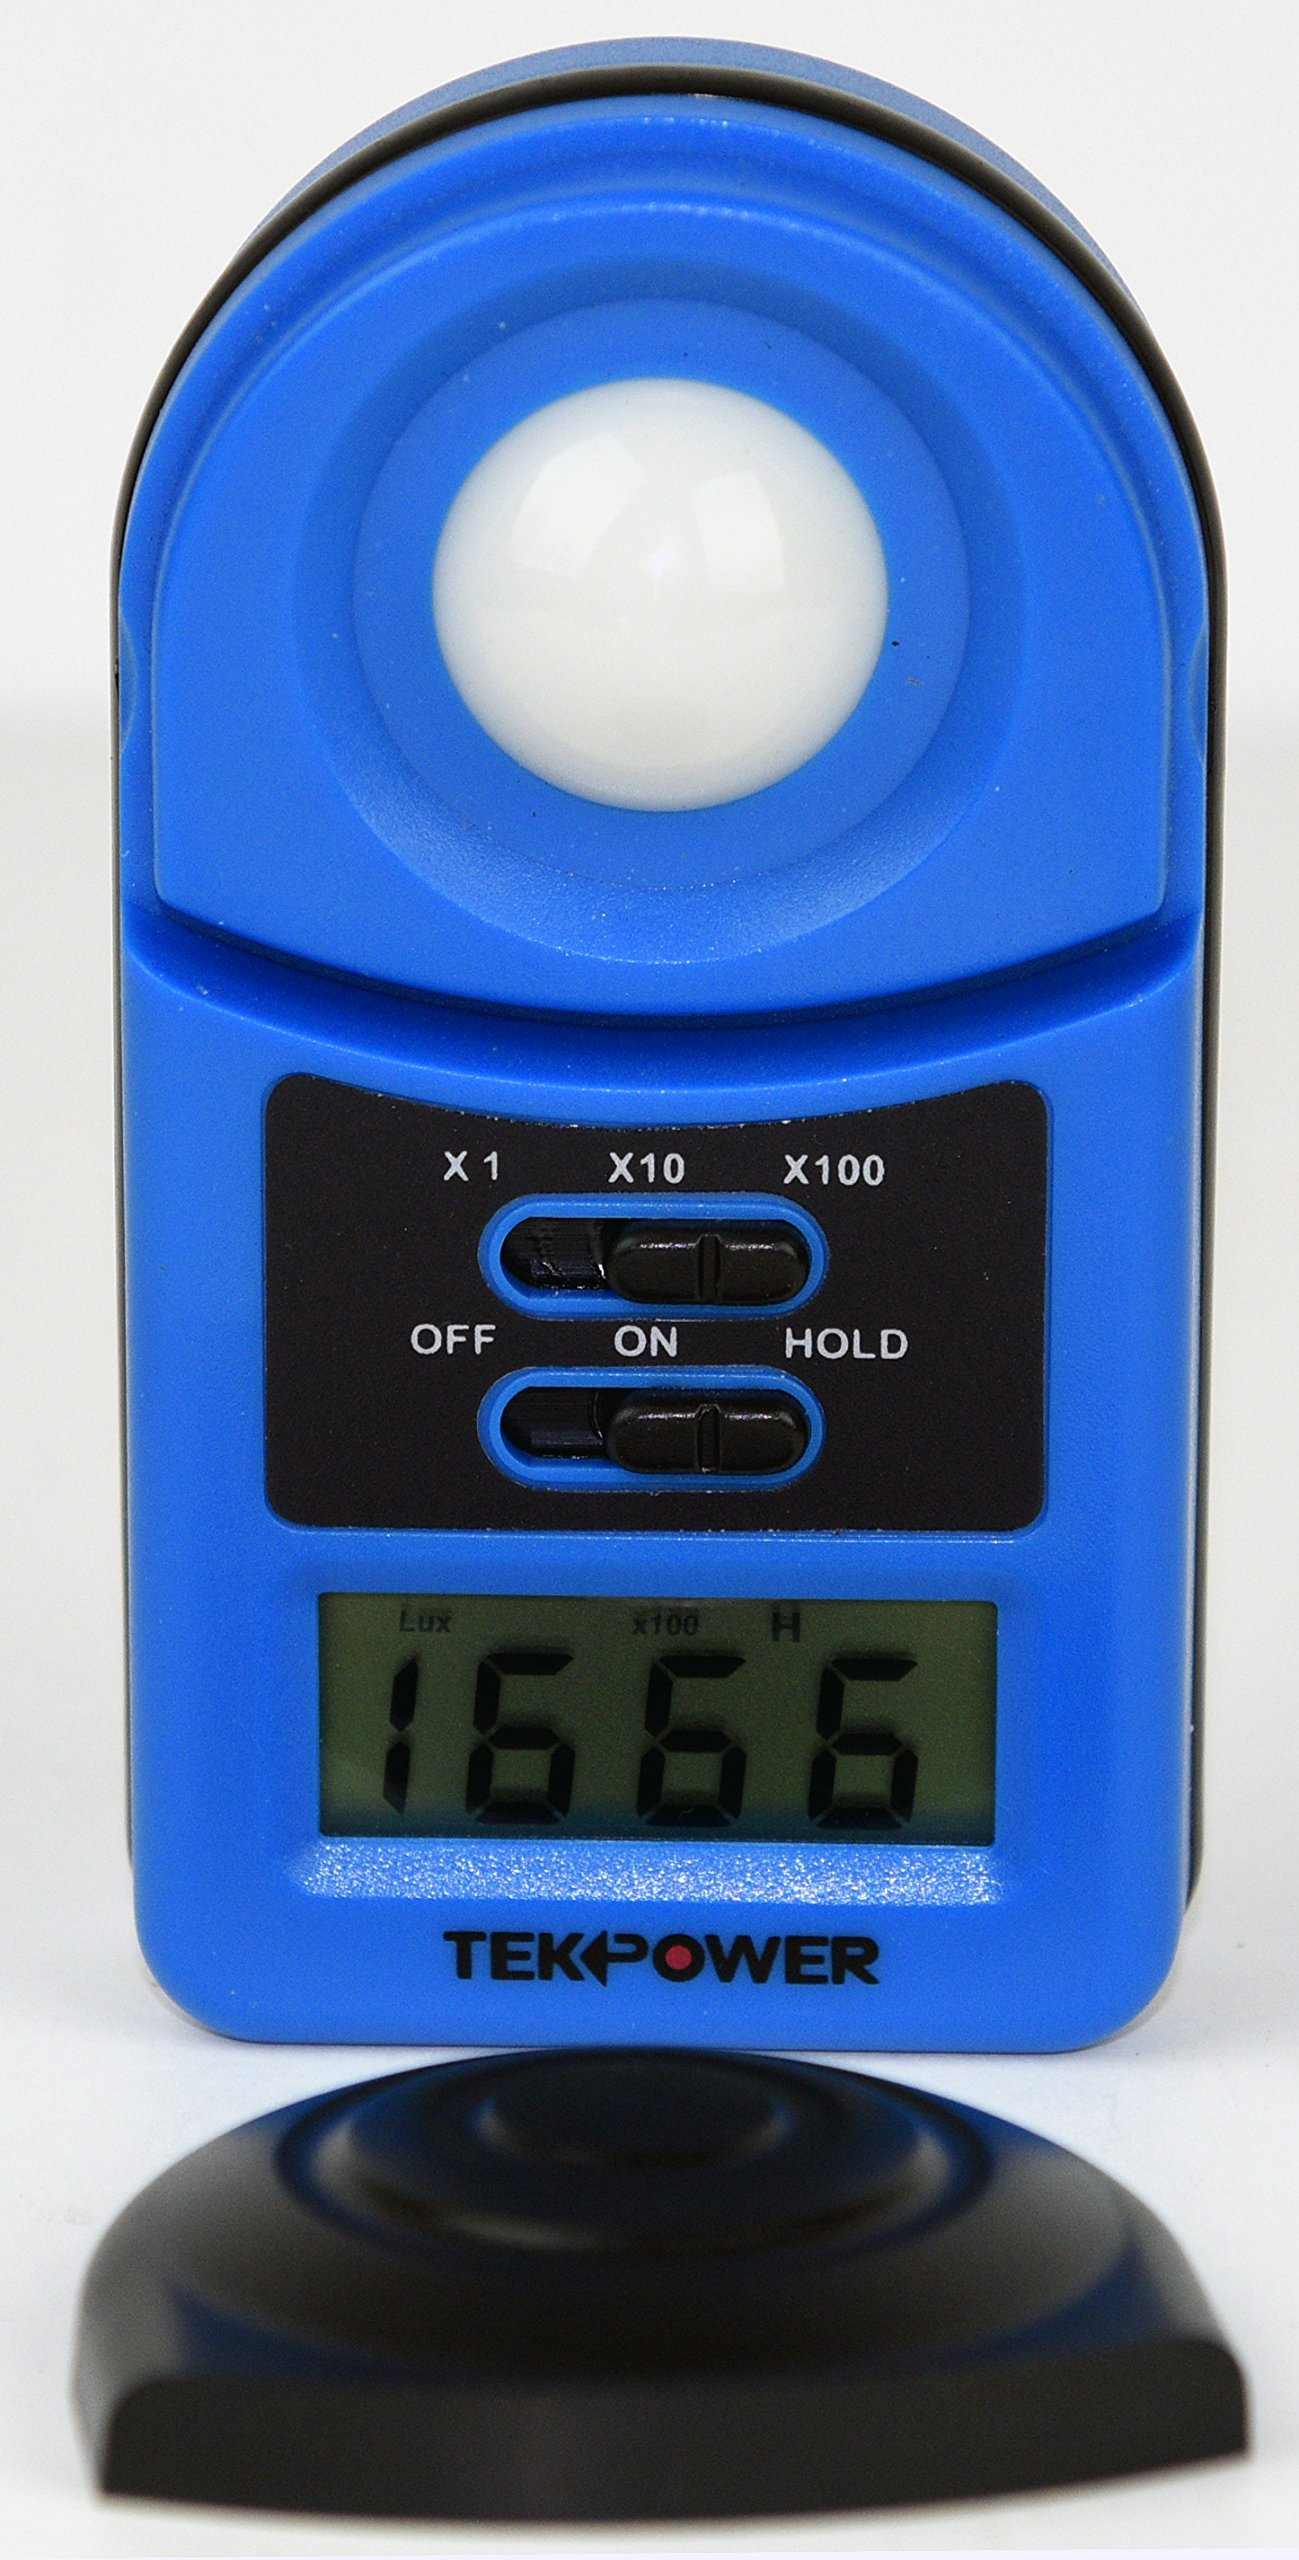 A Lux Meter for Photographer, Pocket size Lux meter for indoor and out door 0-50,000 Lux,LX1010R by Tekpower